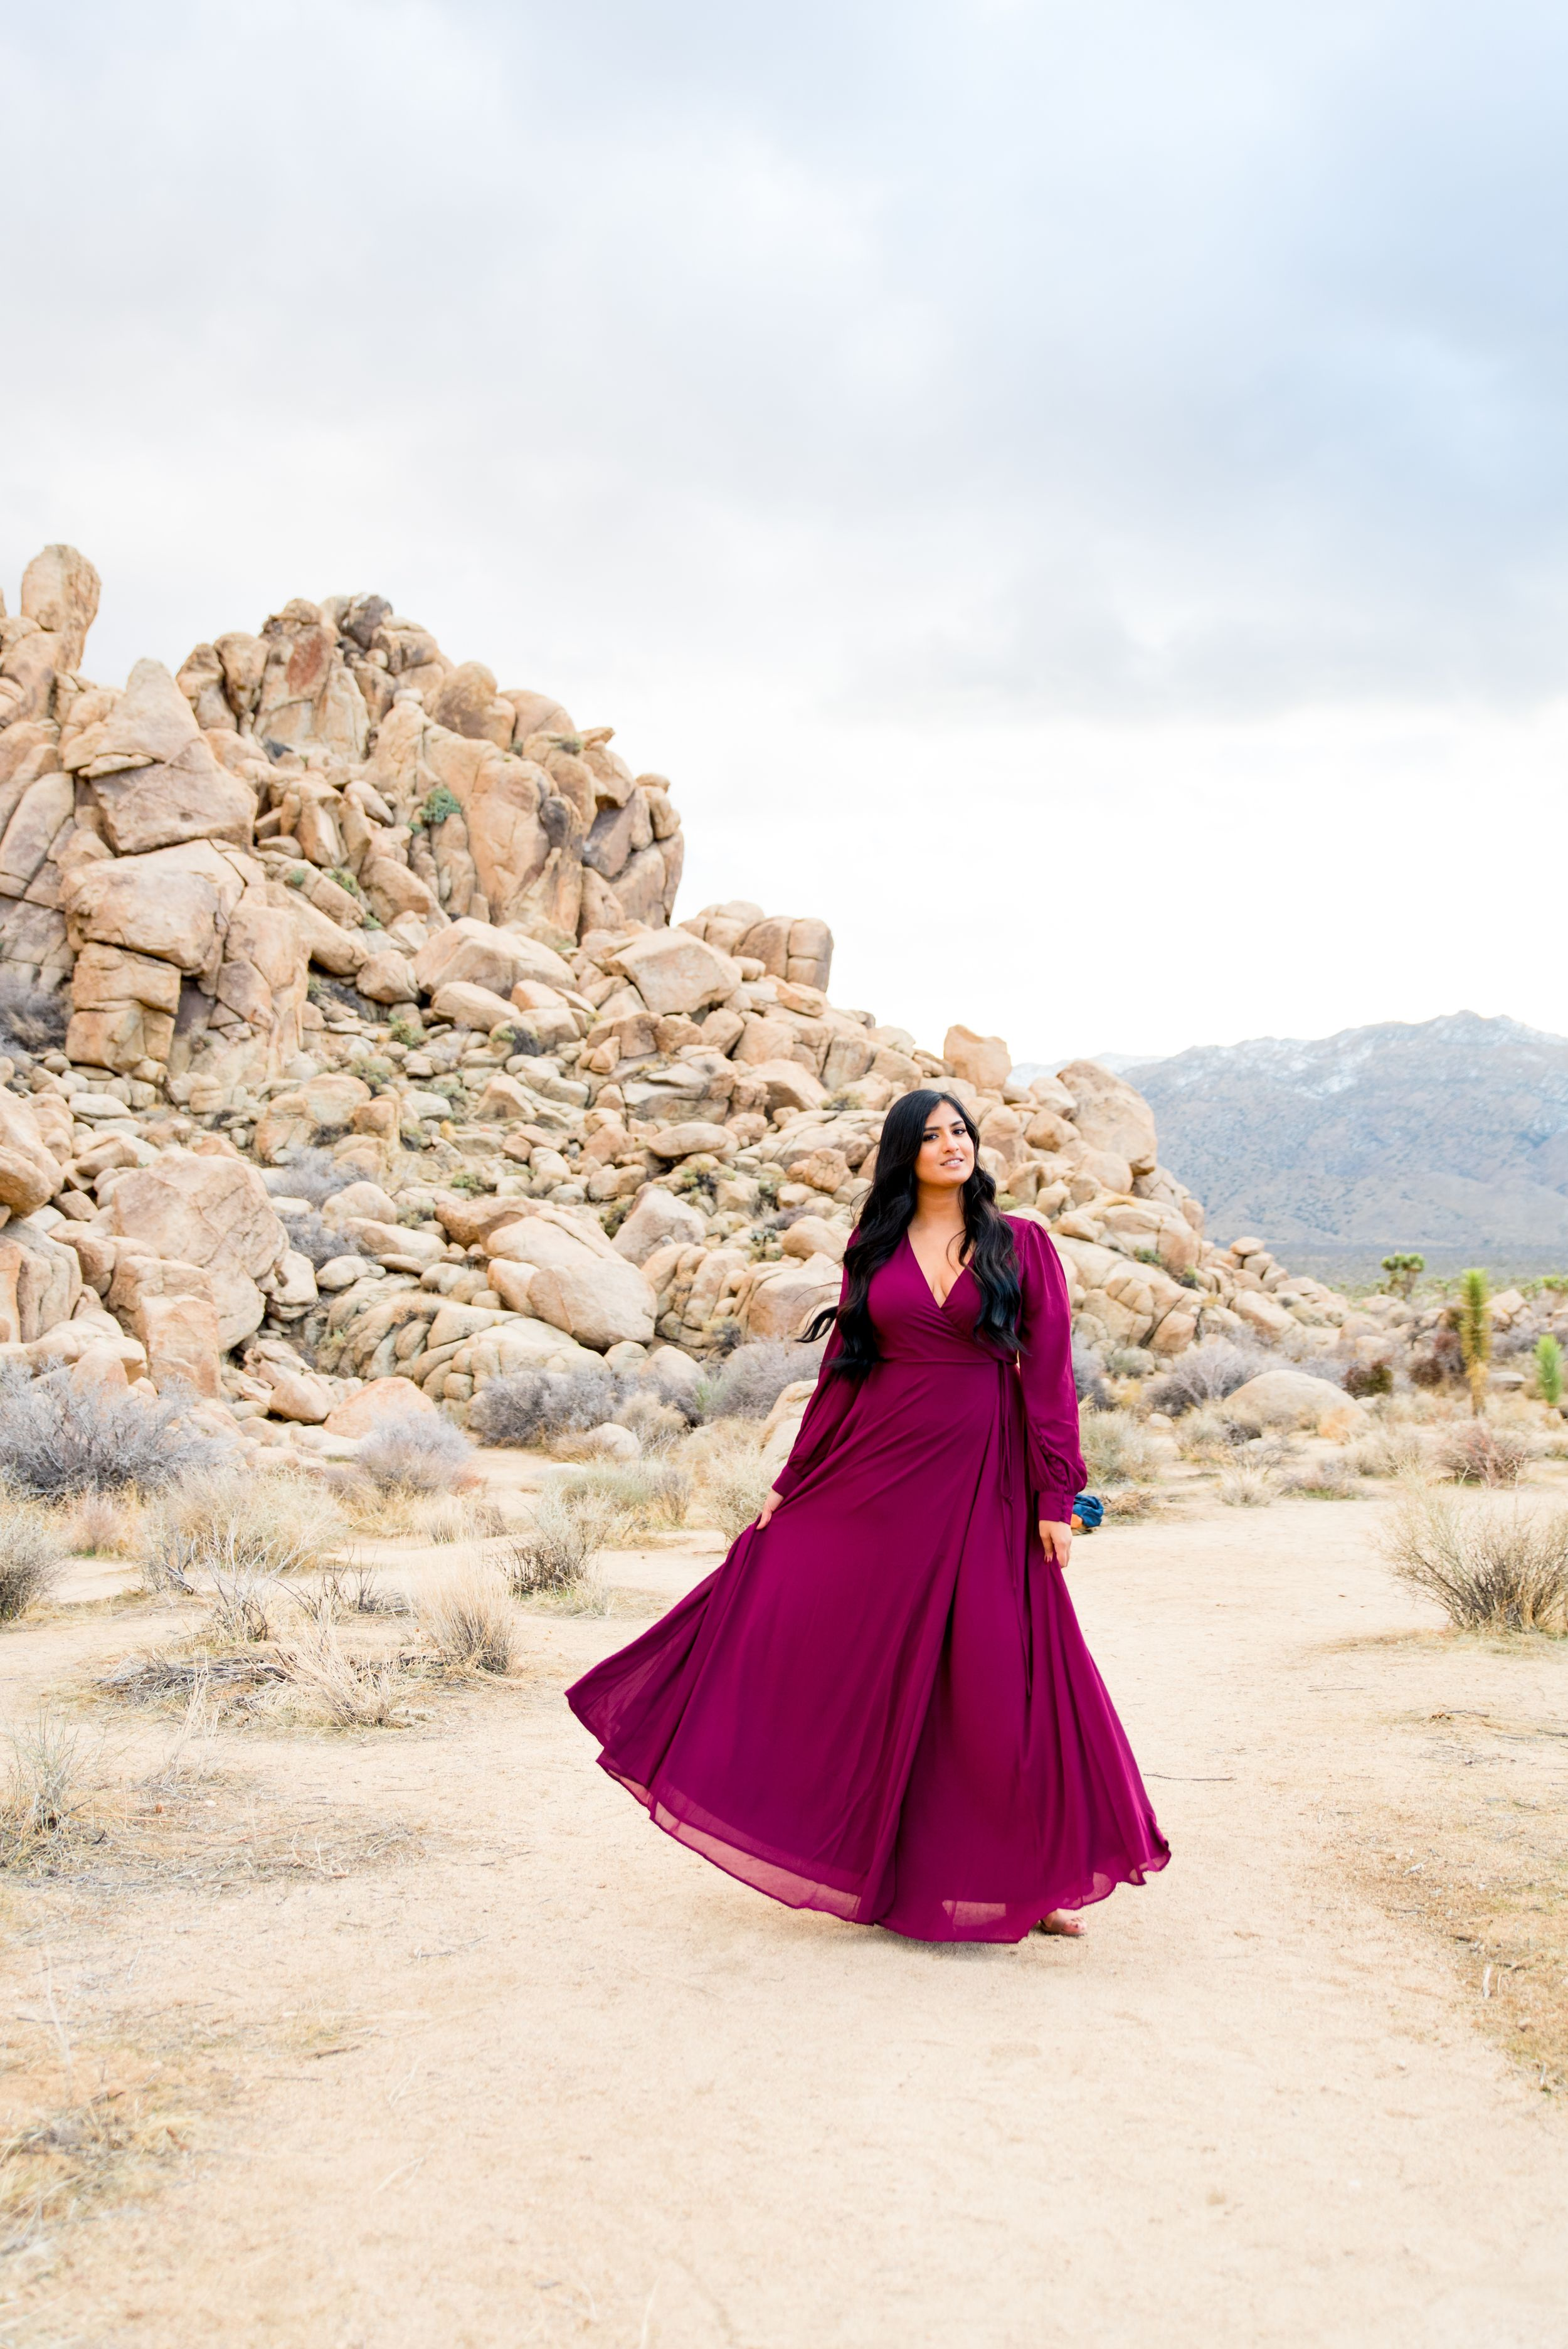 woman with long dark hair in red maxi dress looks to the side in front of boulders at Joshua Tree National Park